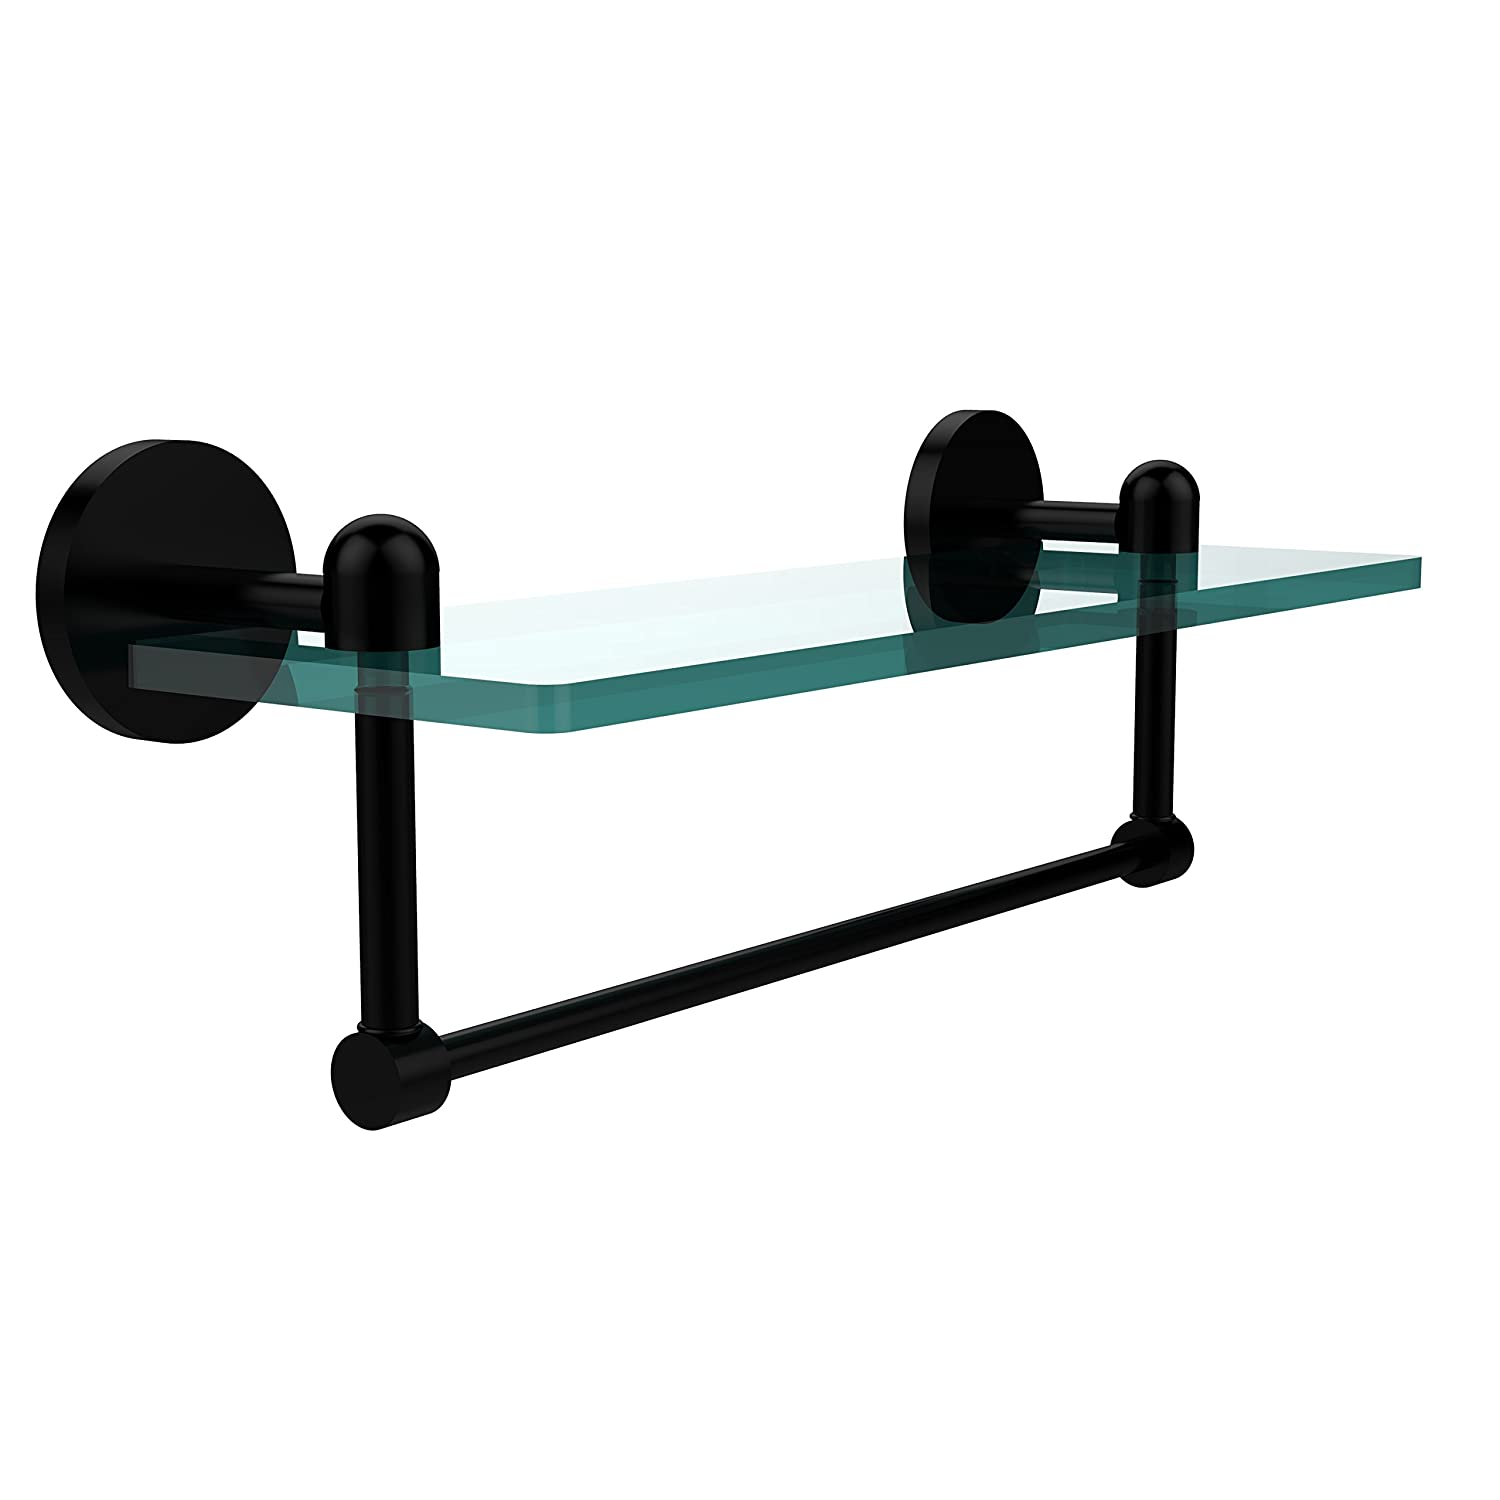 Allied Brass TA-1TB/22-SCH Glass Shelf with Towel Bar, 22-Inch x 5-Inch by Allied Brass B001O8AJXU 22 in.|サテンクローム サテンクローム 22 in.